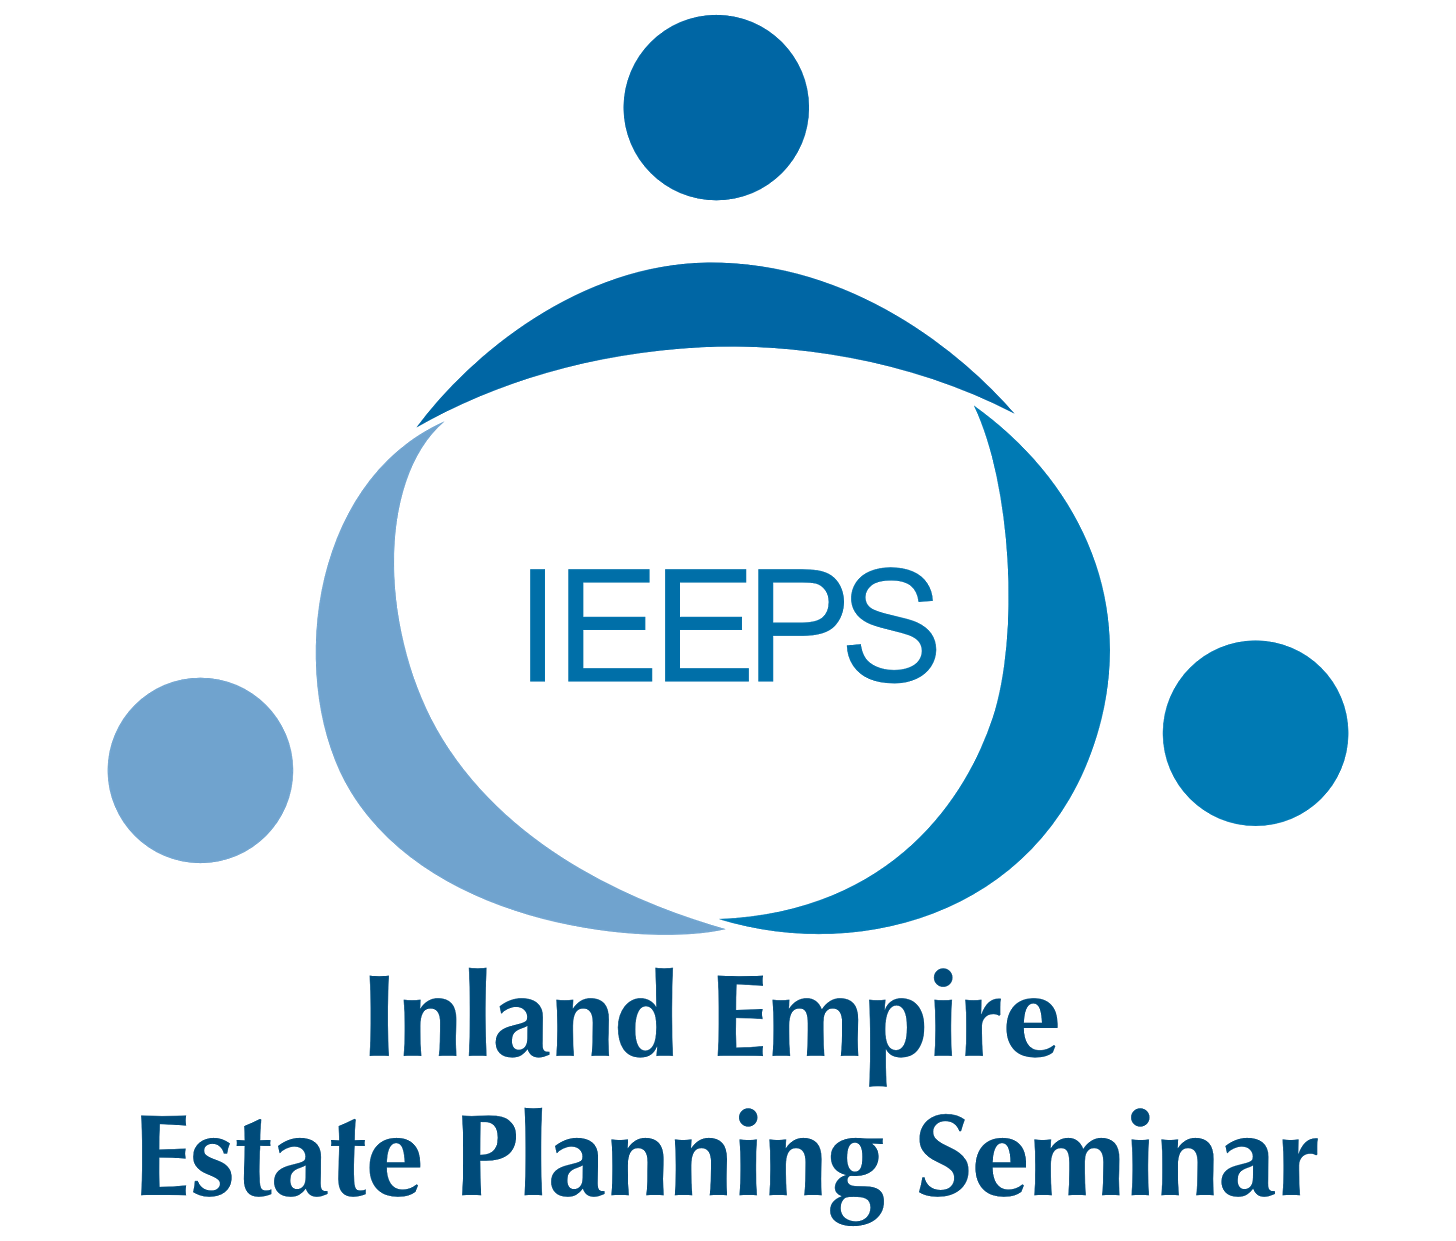 Inland Empire Estate Planning Seminar